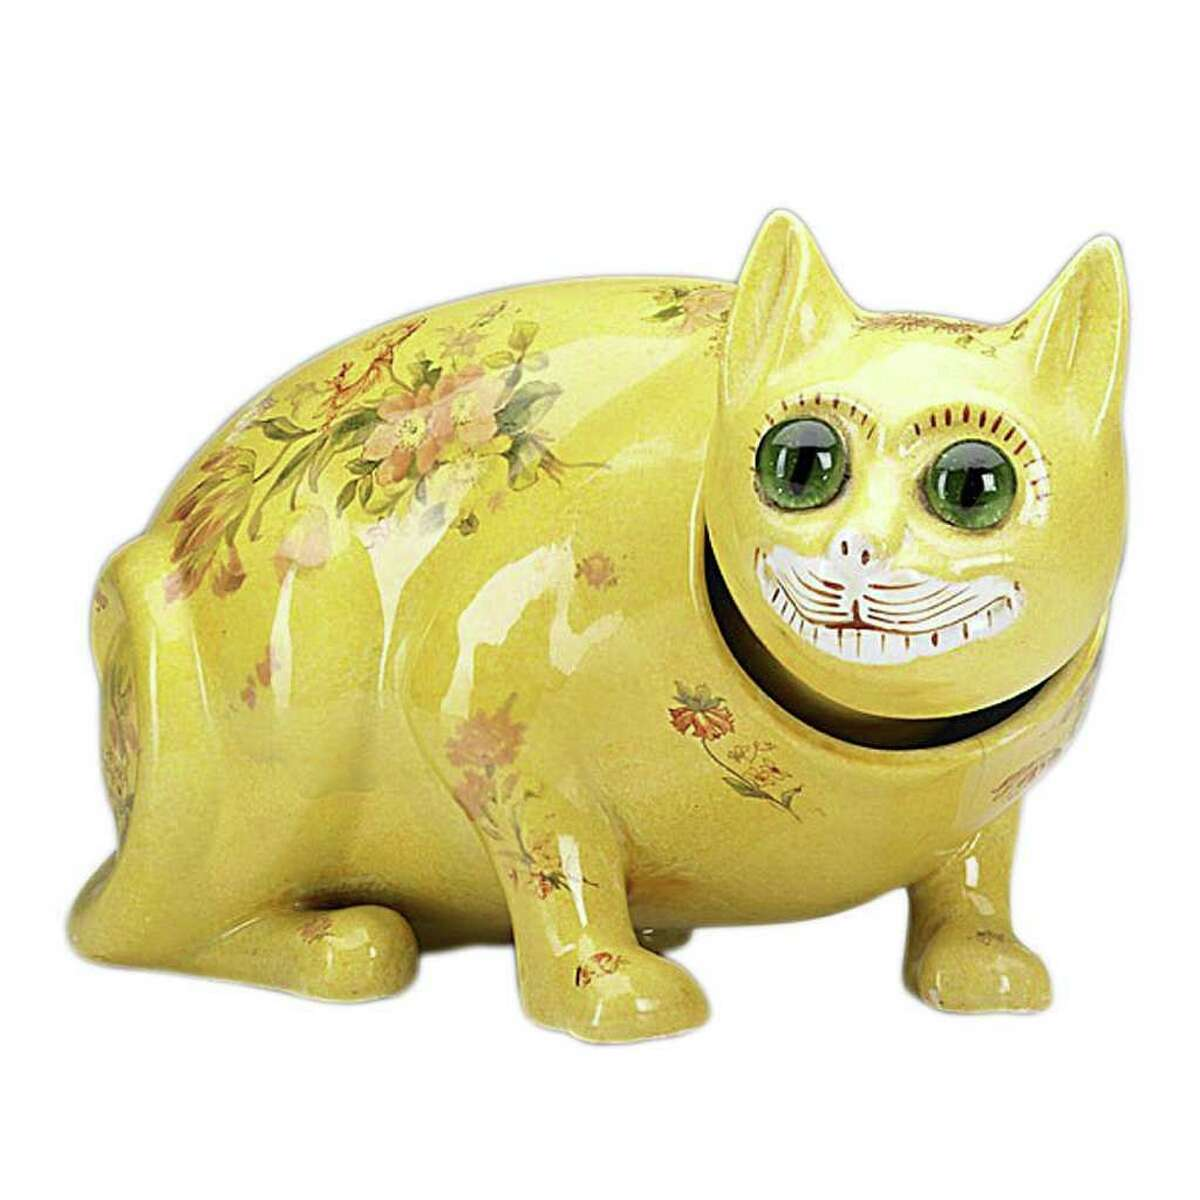 Any Galle pottery cat is amusing and unusual. This yellow cat has large round glass eyes and small transfer decorations on its body. Even with a hairline crack, the 5-1/2-by-10-inch figure sold for $800 at a November Rago auction in Lambertville, N.J.